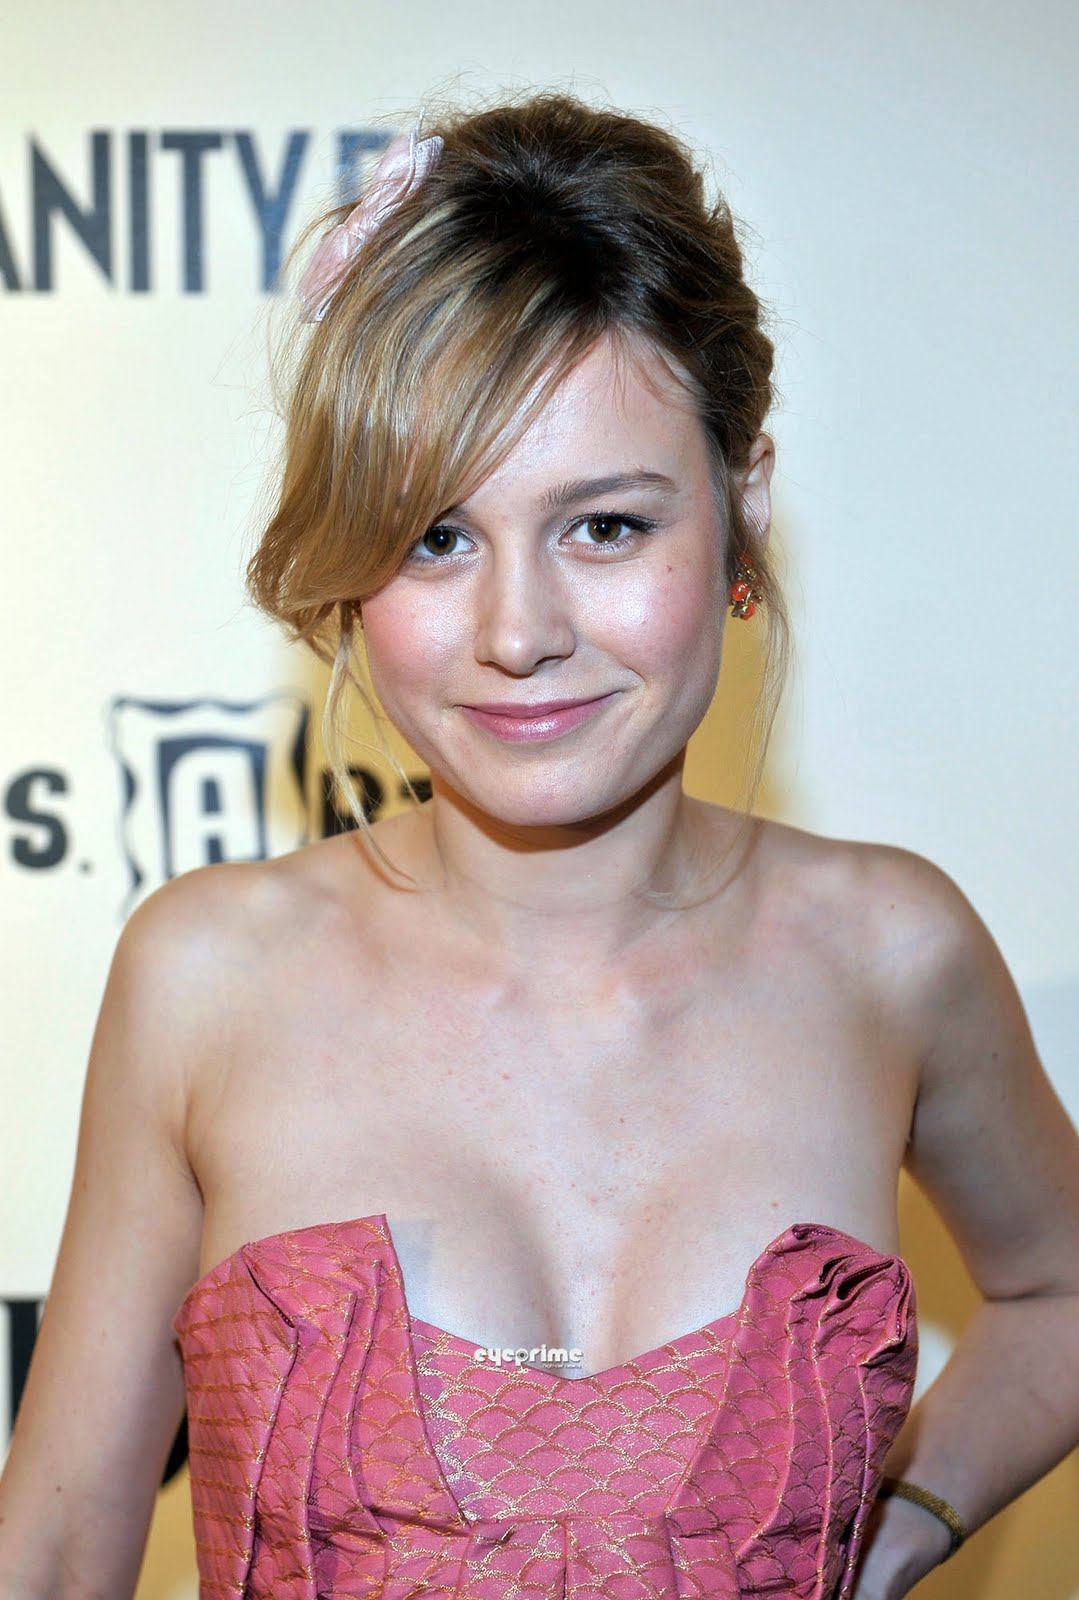 Daily Sizzling News Brie Larson A Biography